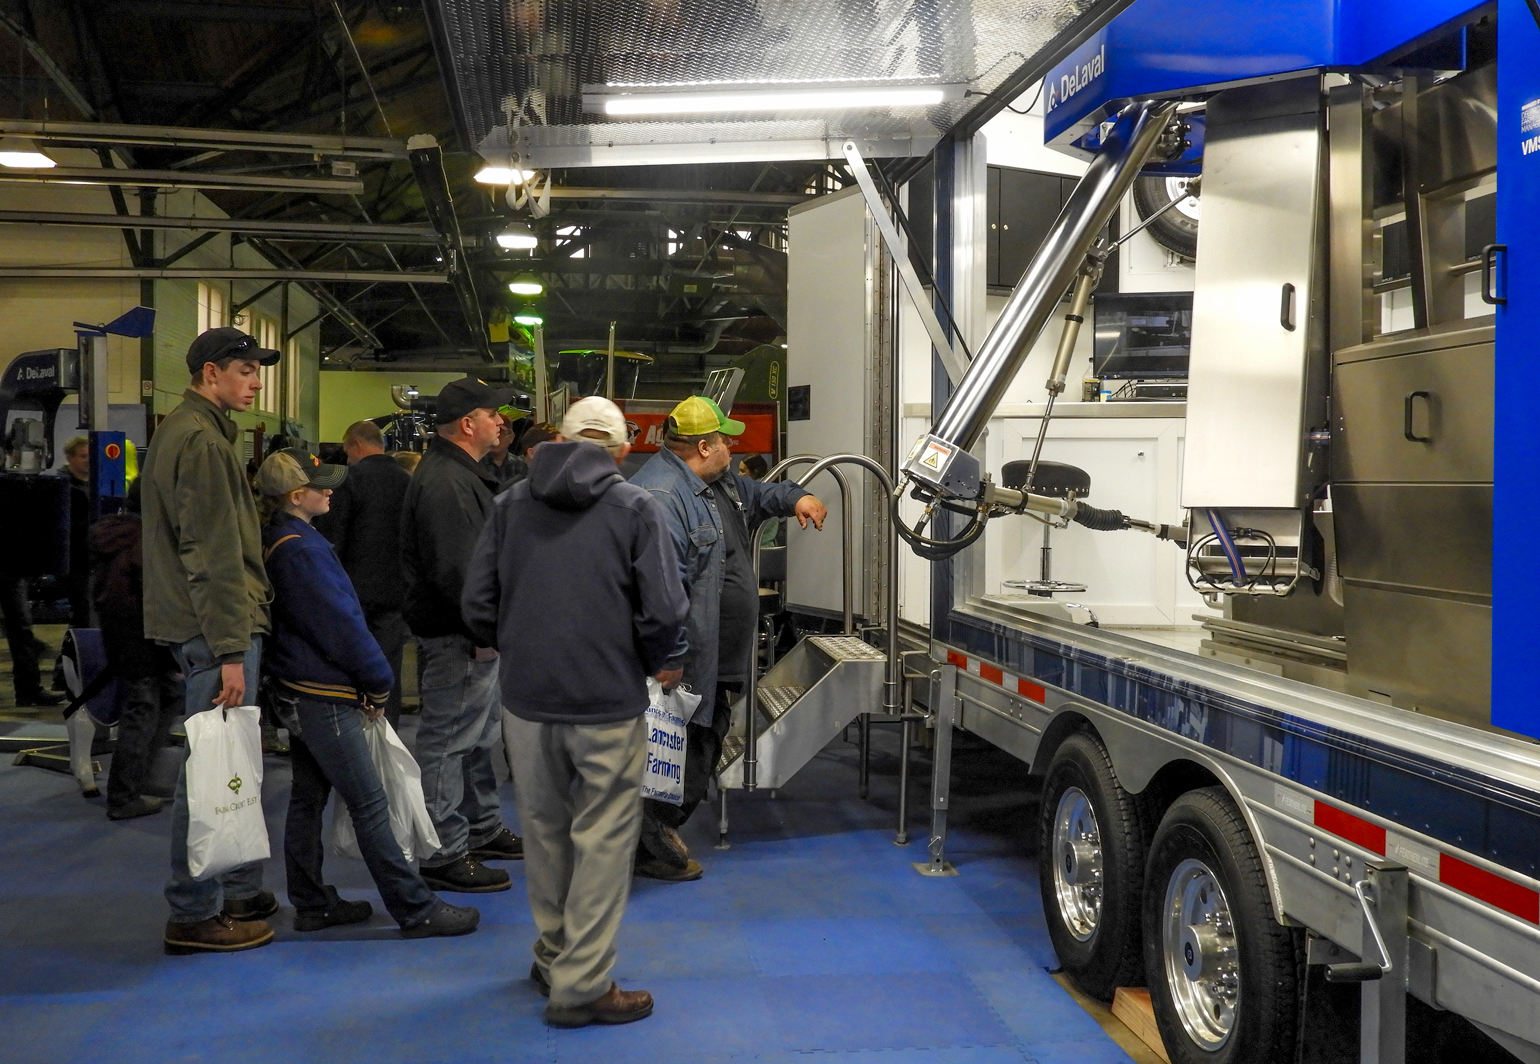 Farmers look at the latest in robotic milking technology at the New York Farm Show